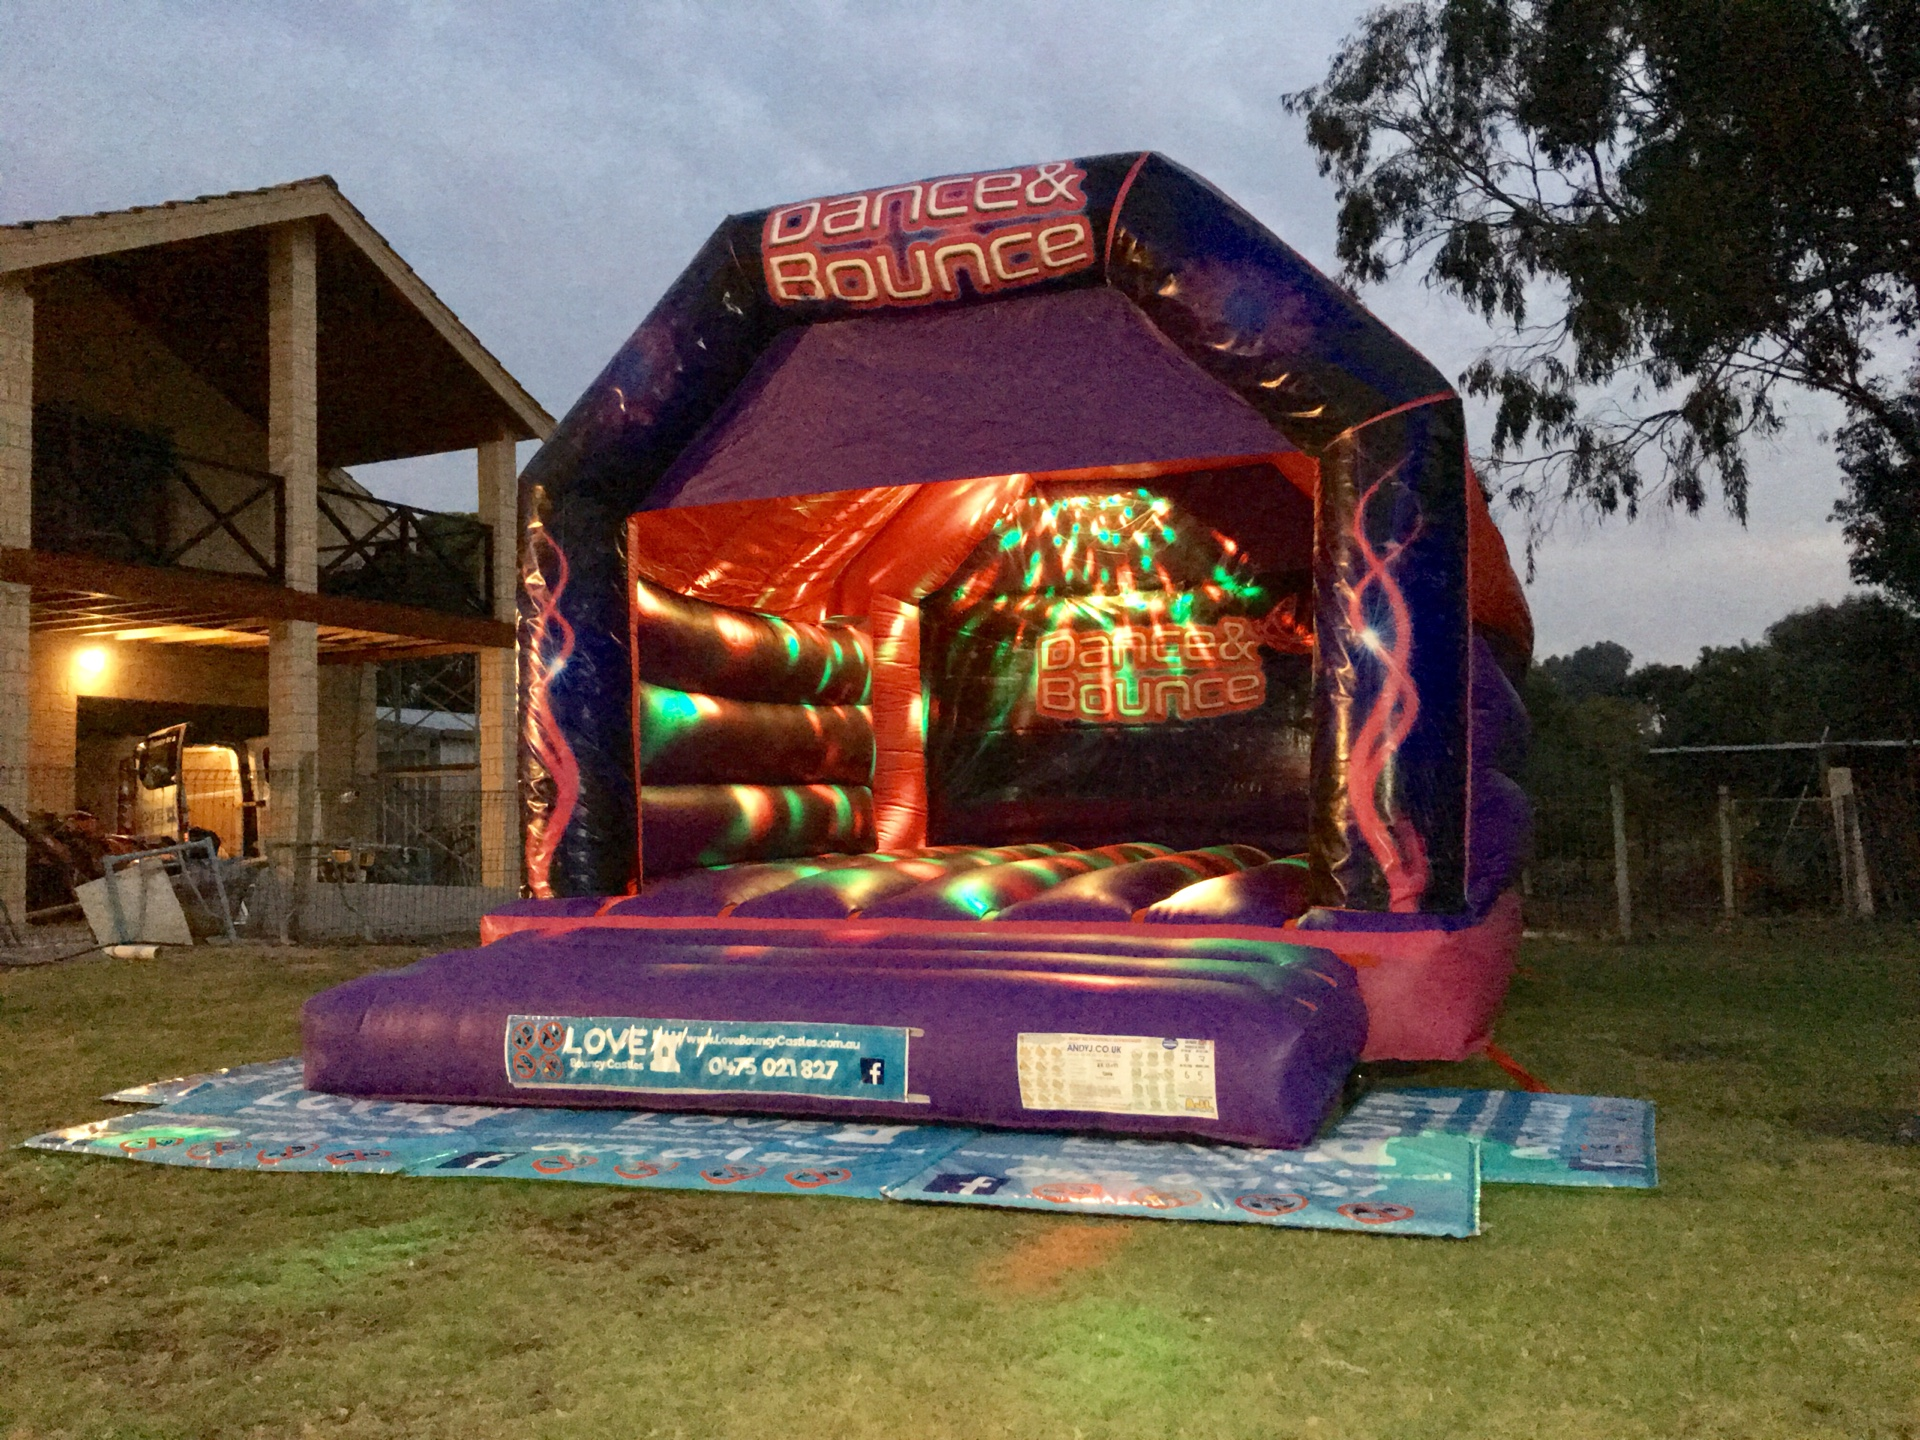 Copy of Dance and Bounce Jumping Castle Night Hire In Perth, WA